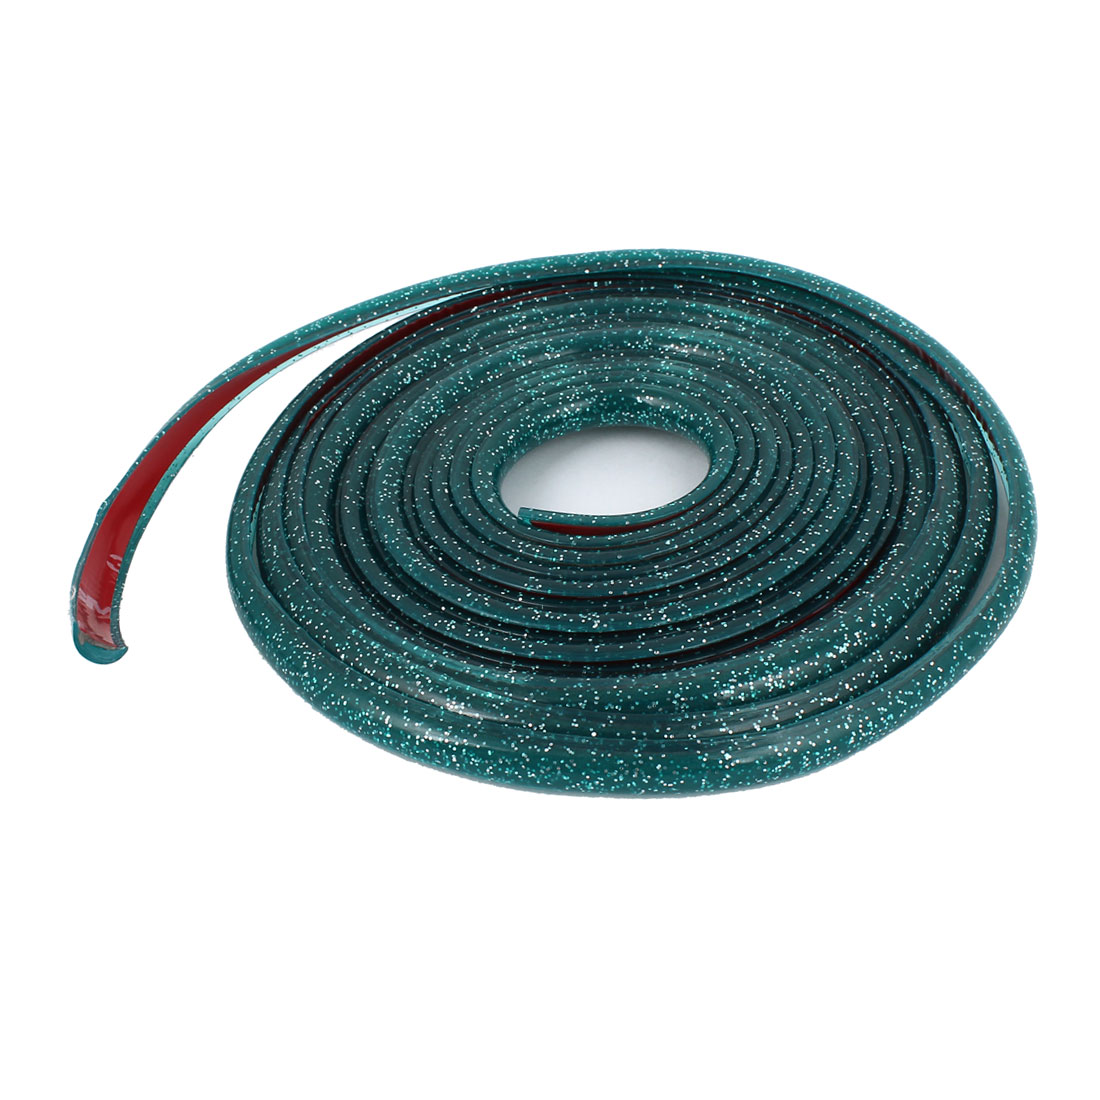 Car Window Door Glittery Green Moulding Trim Strip 4M Long 10mm Width